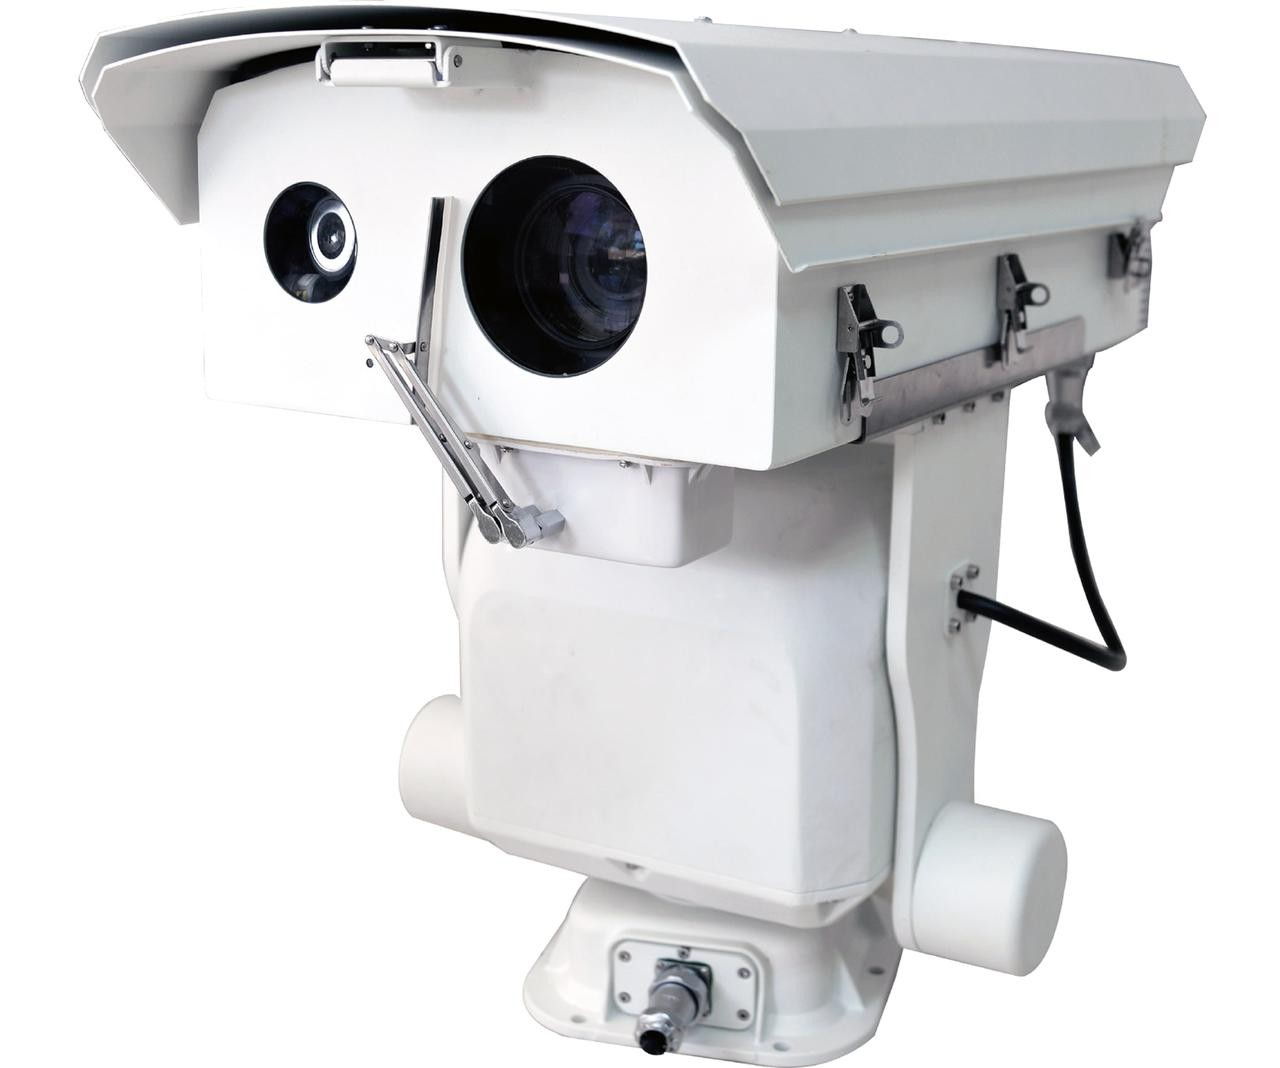 Tiandy TC-LS1000S6-2MP-A 2MP Long Range 1KM 1000 Meter Auto-focus Laser Smart IP Heavy-Duty Border Security PTZ Camera